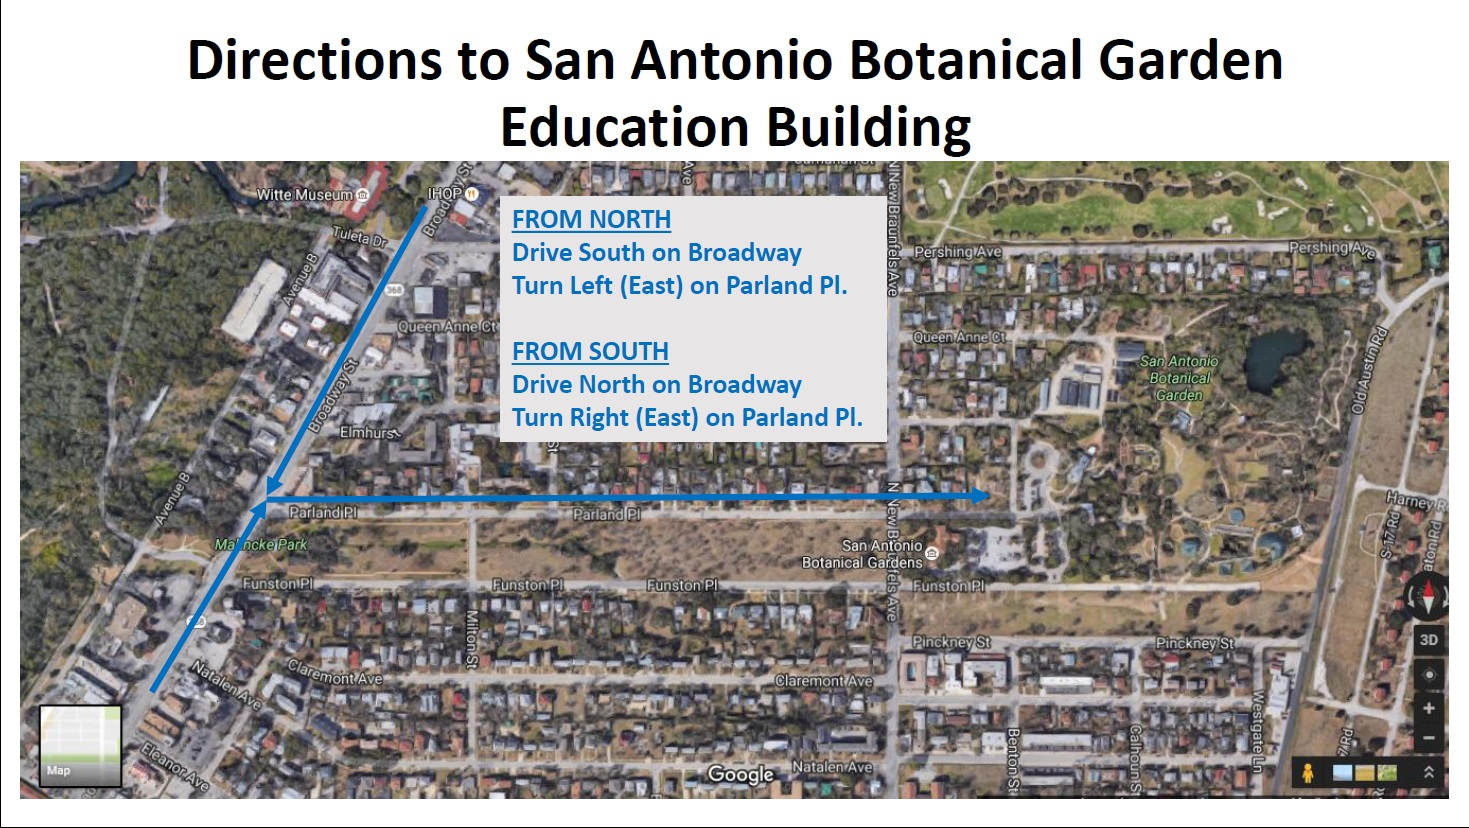 Directions to the Educational Building